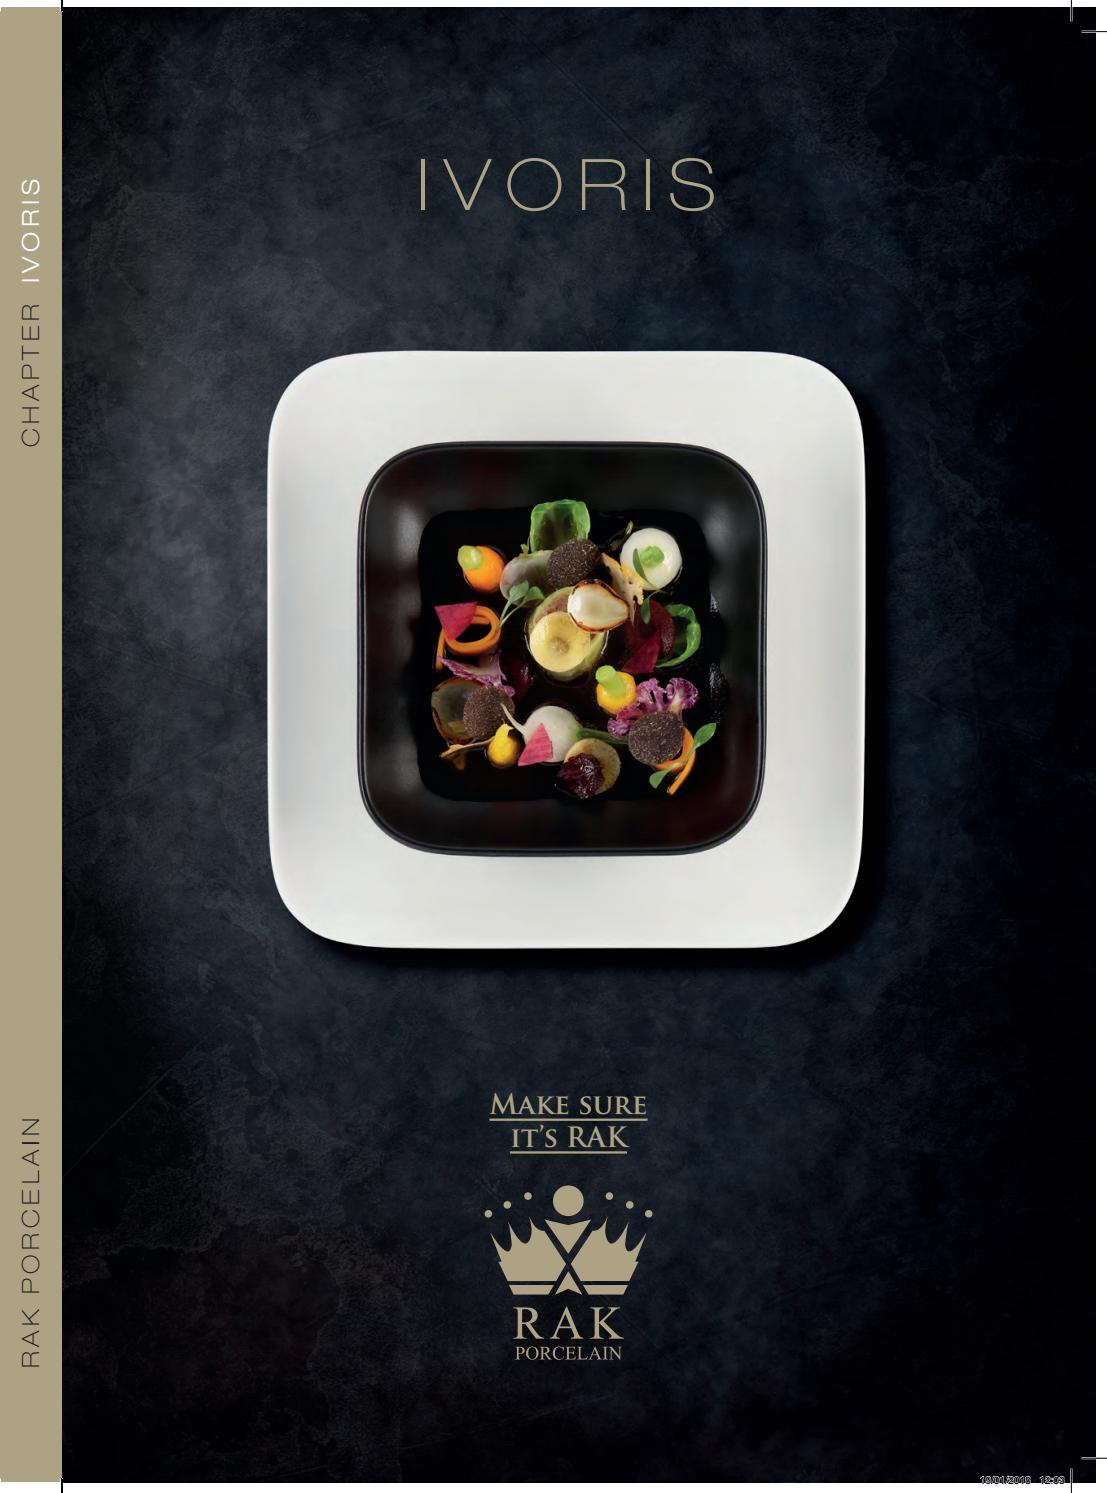 Expert Klein Mikrowelle 2018 Rak Porcelain Ivoris Catalogue By Owlpinegroup Issuu